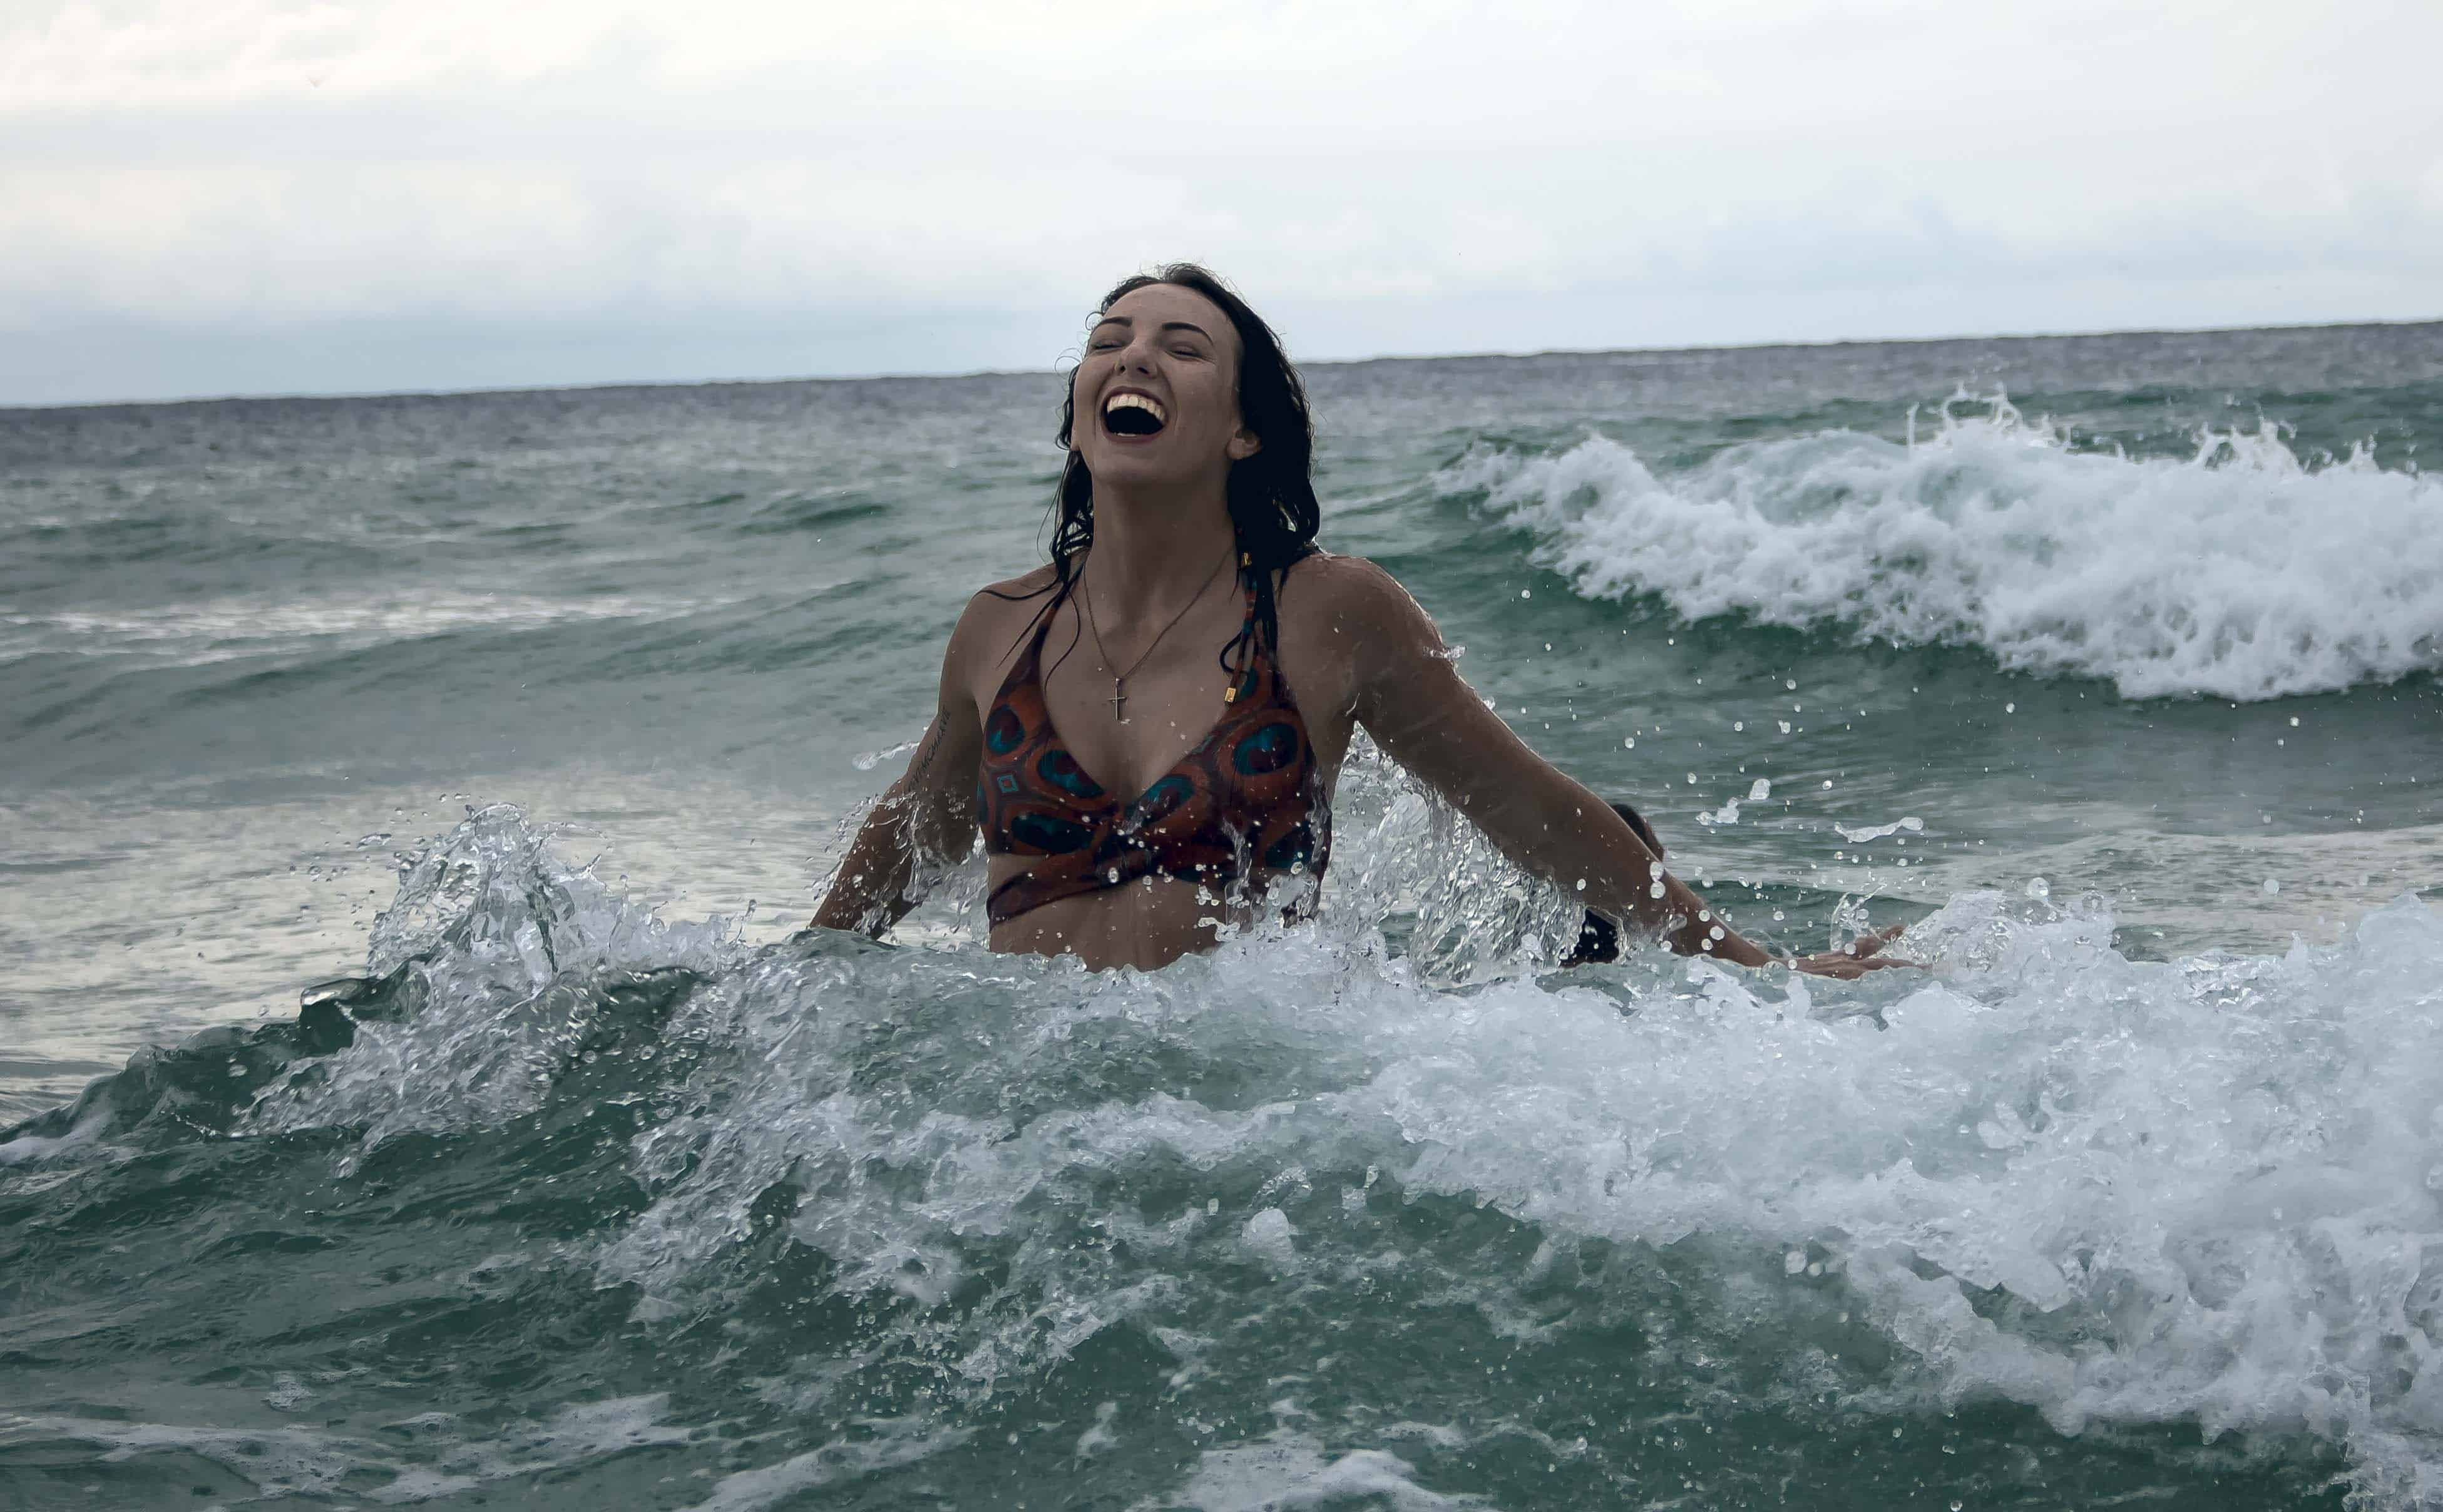 A woman enjoying her self in the ocean, living for the weekend.